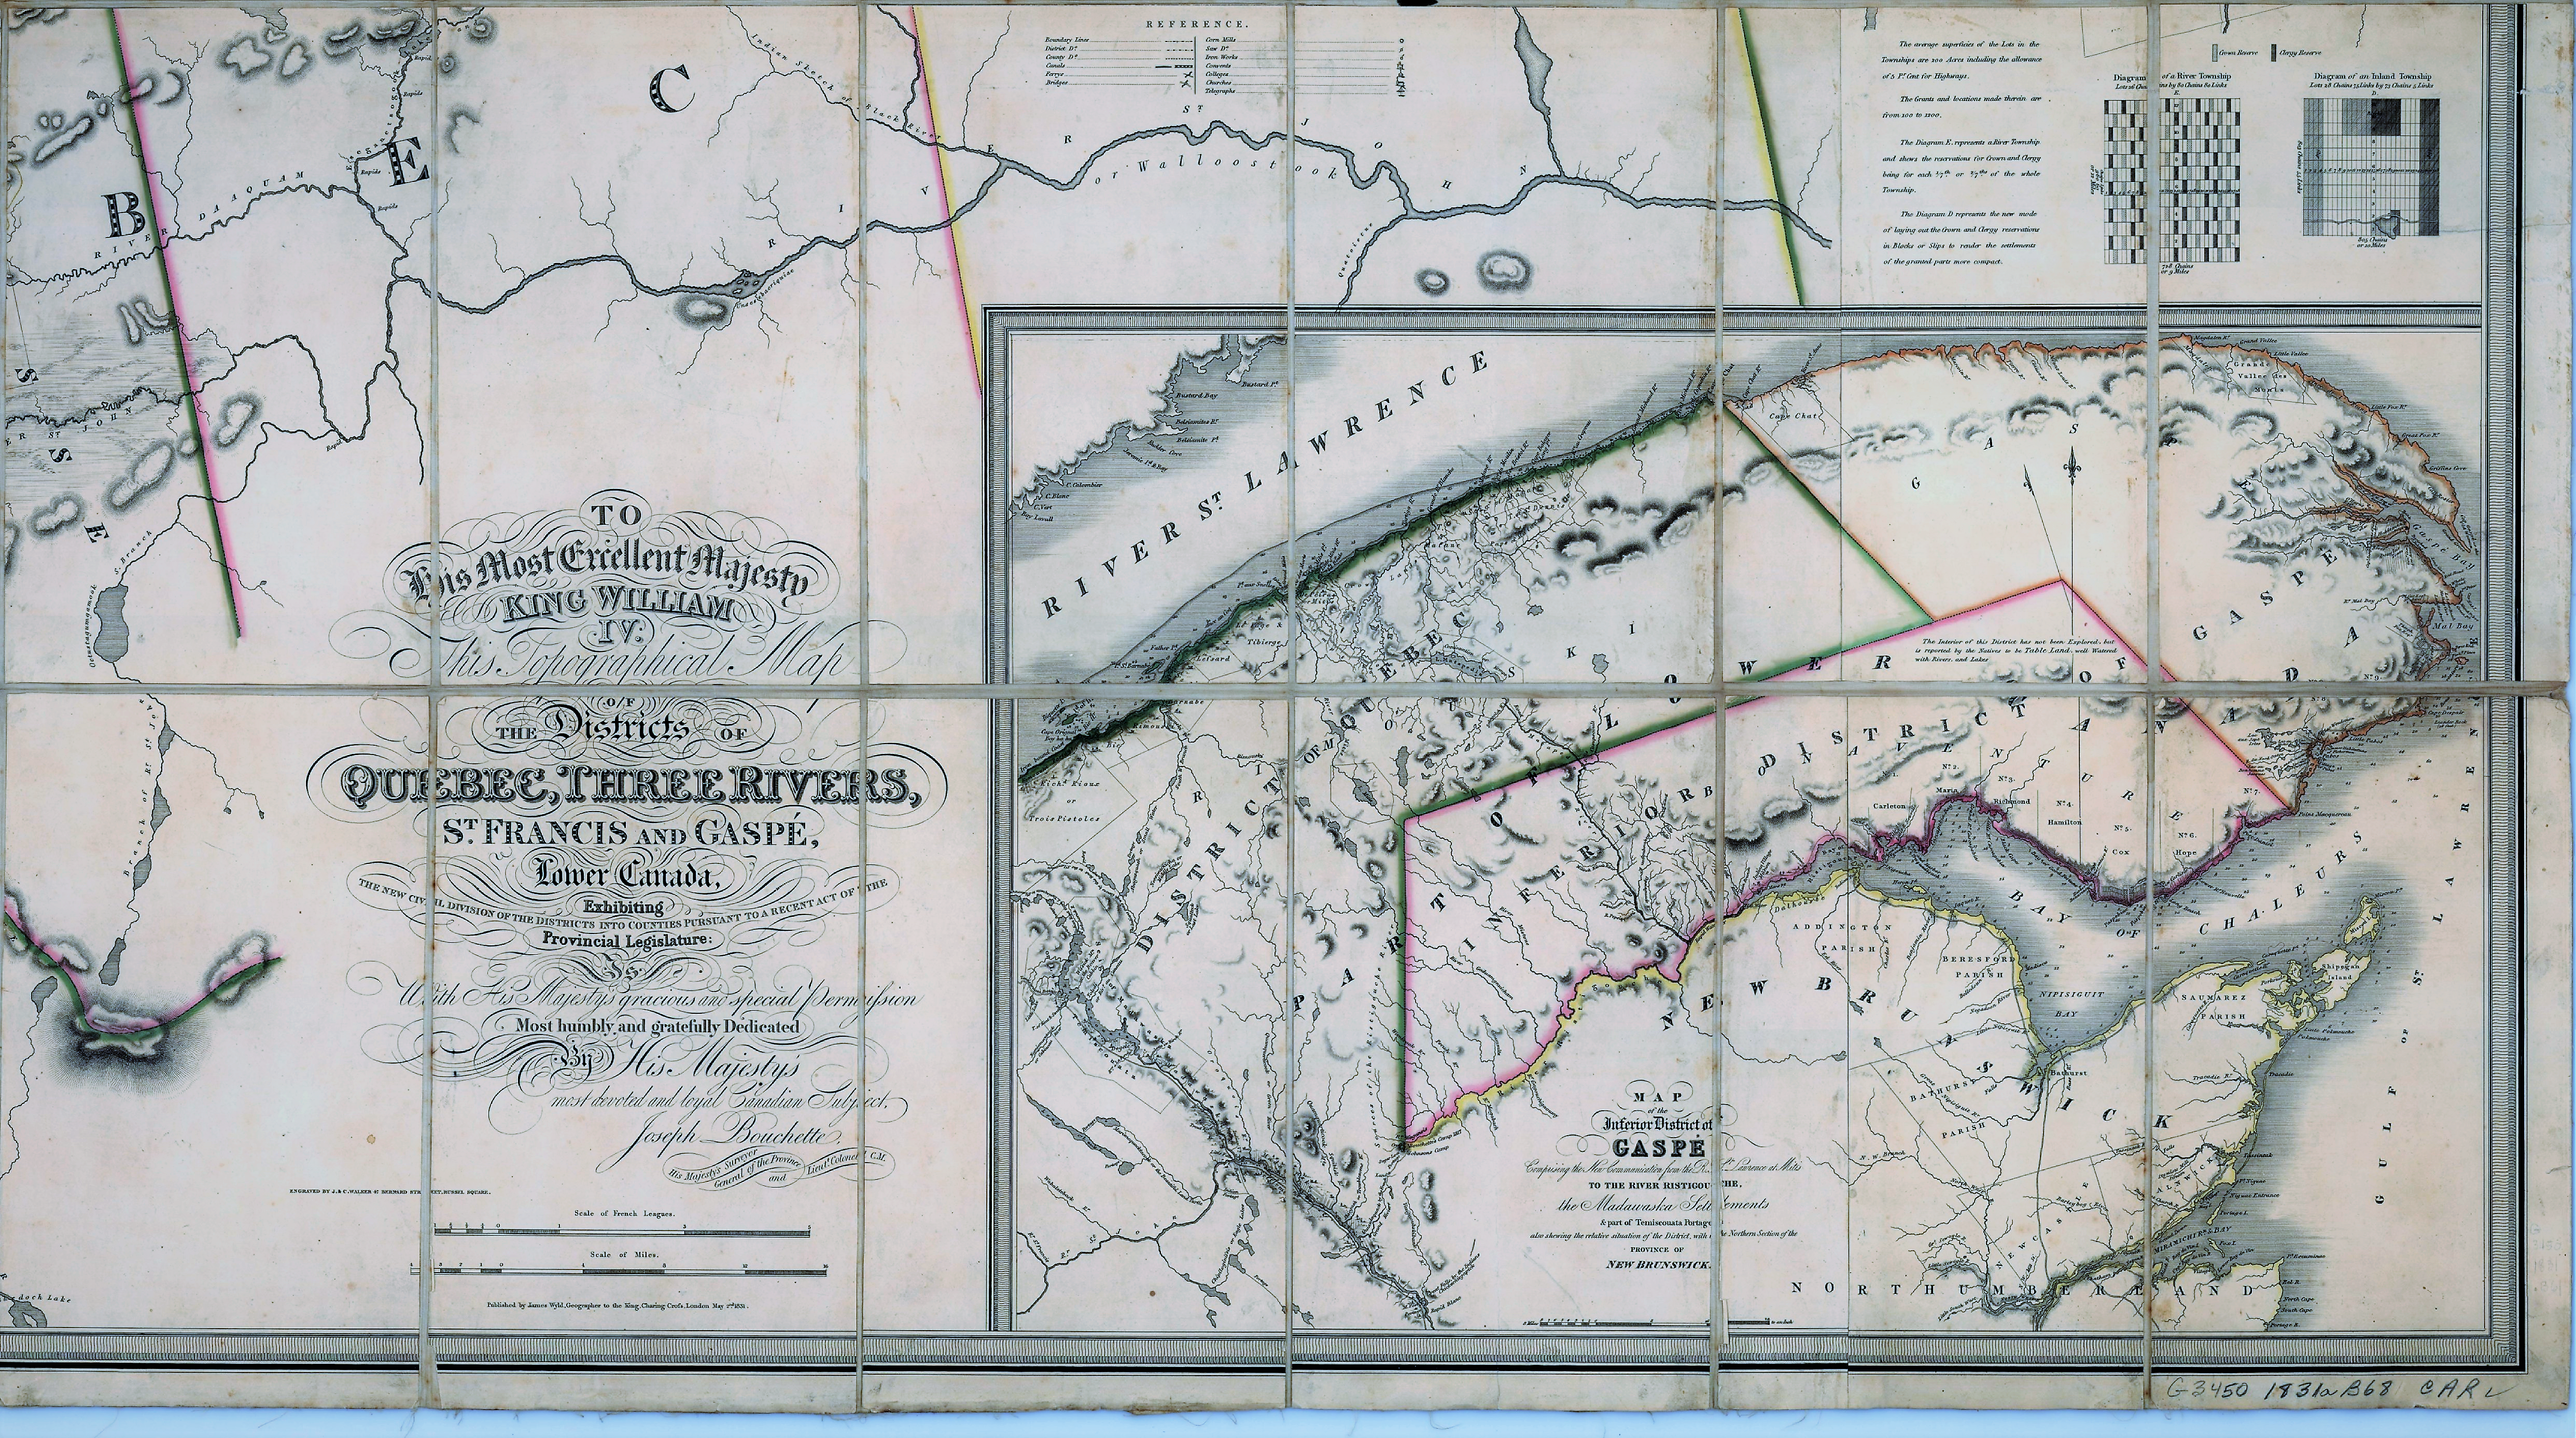 Gaspe Canada Map.File Topographical Map Of The Districts Of Quebec Three Rivers St